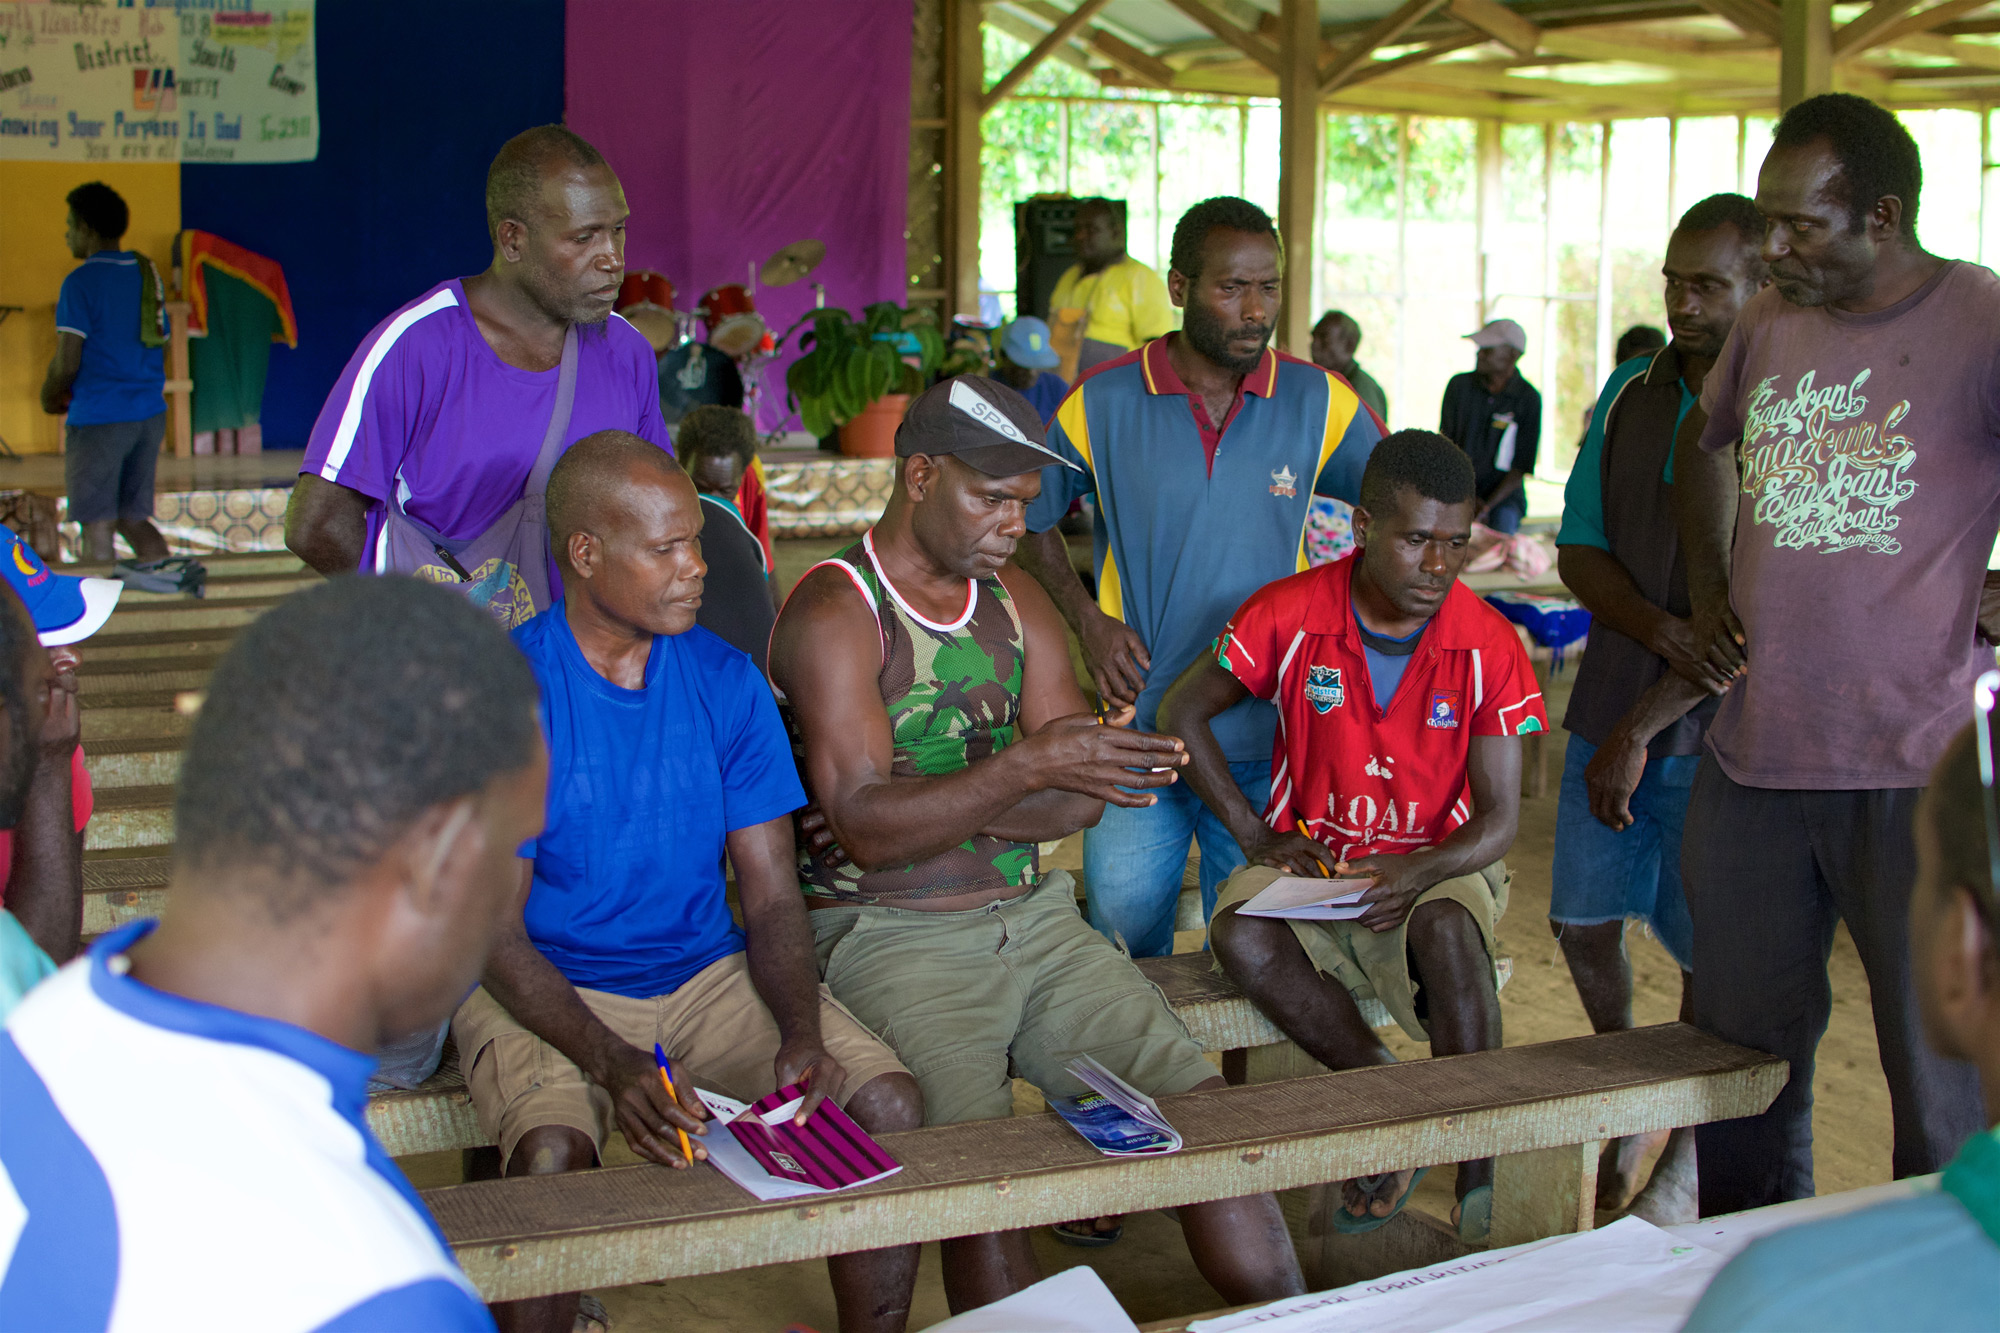 Community dialogues facilitated by local Bougainvillean facilitators